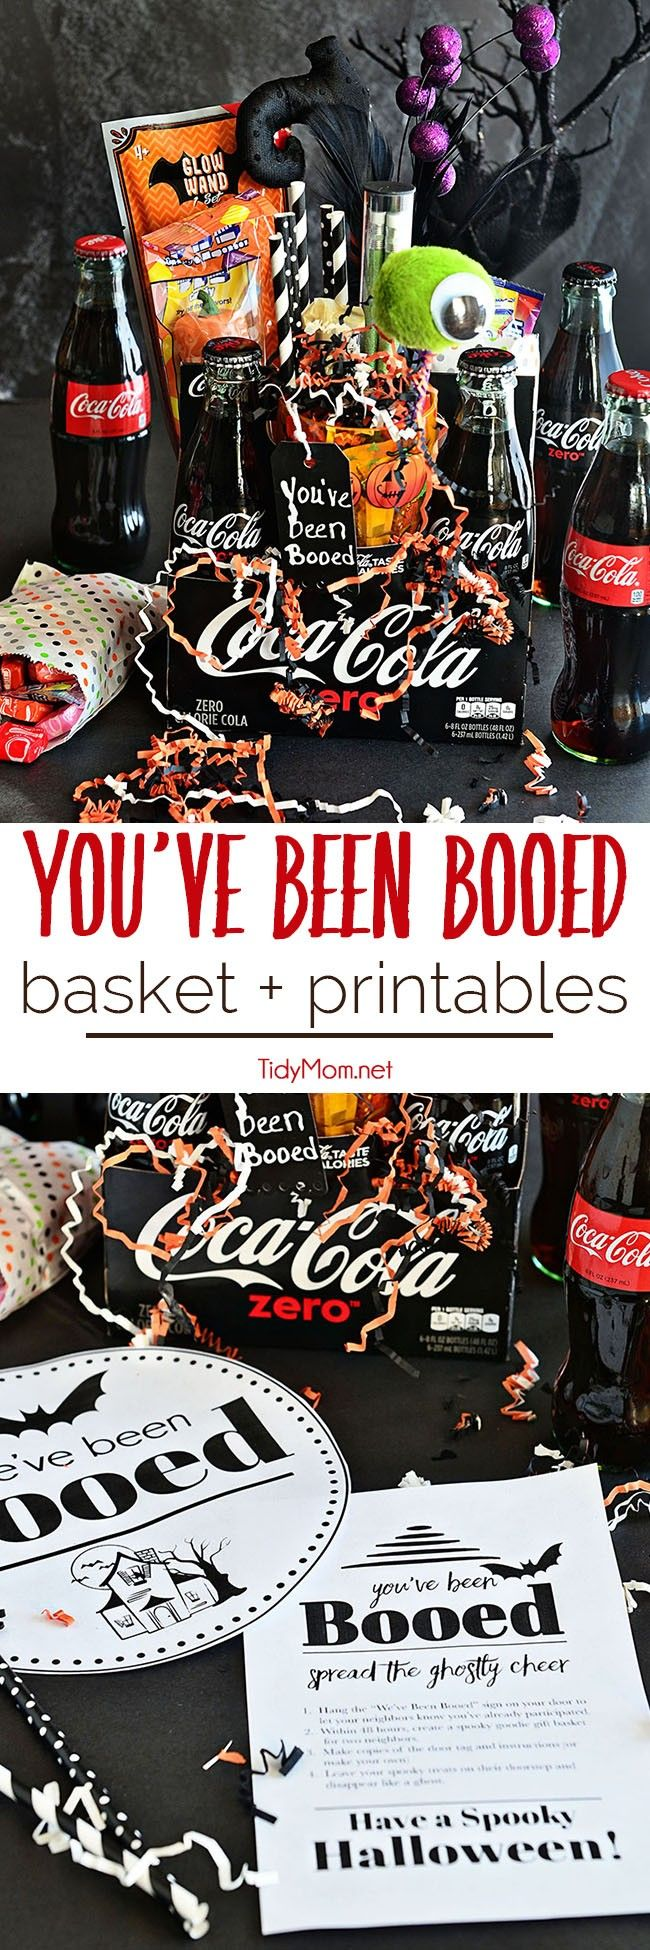 Best 25+ Your neighbors ideas on Pinterest | Homemade chocolate ...